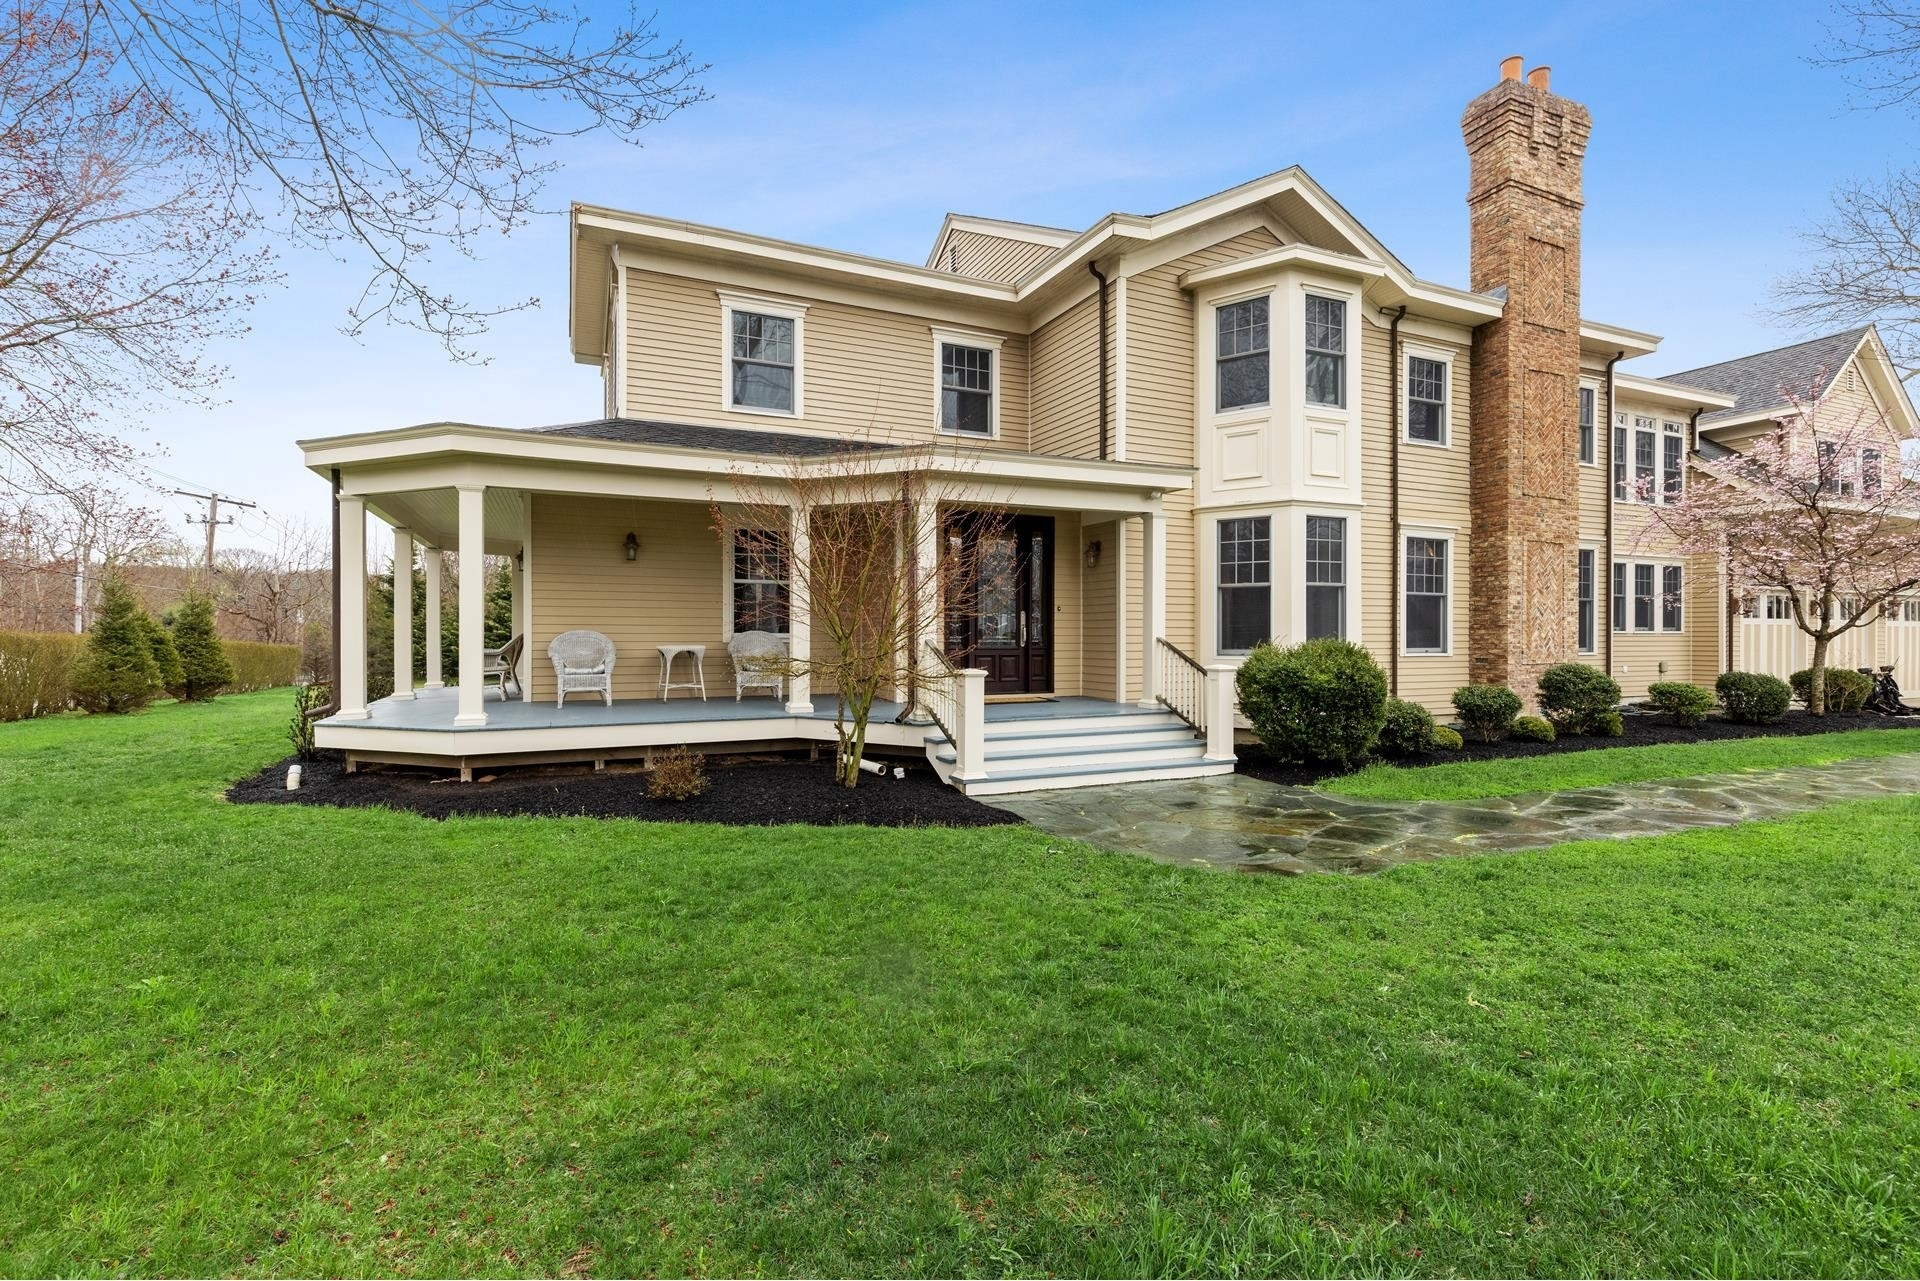 Property at Westhampton, NY 11977